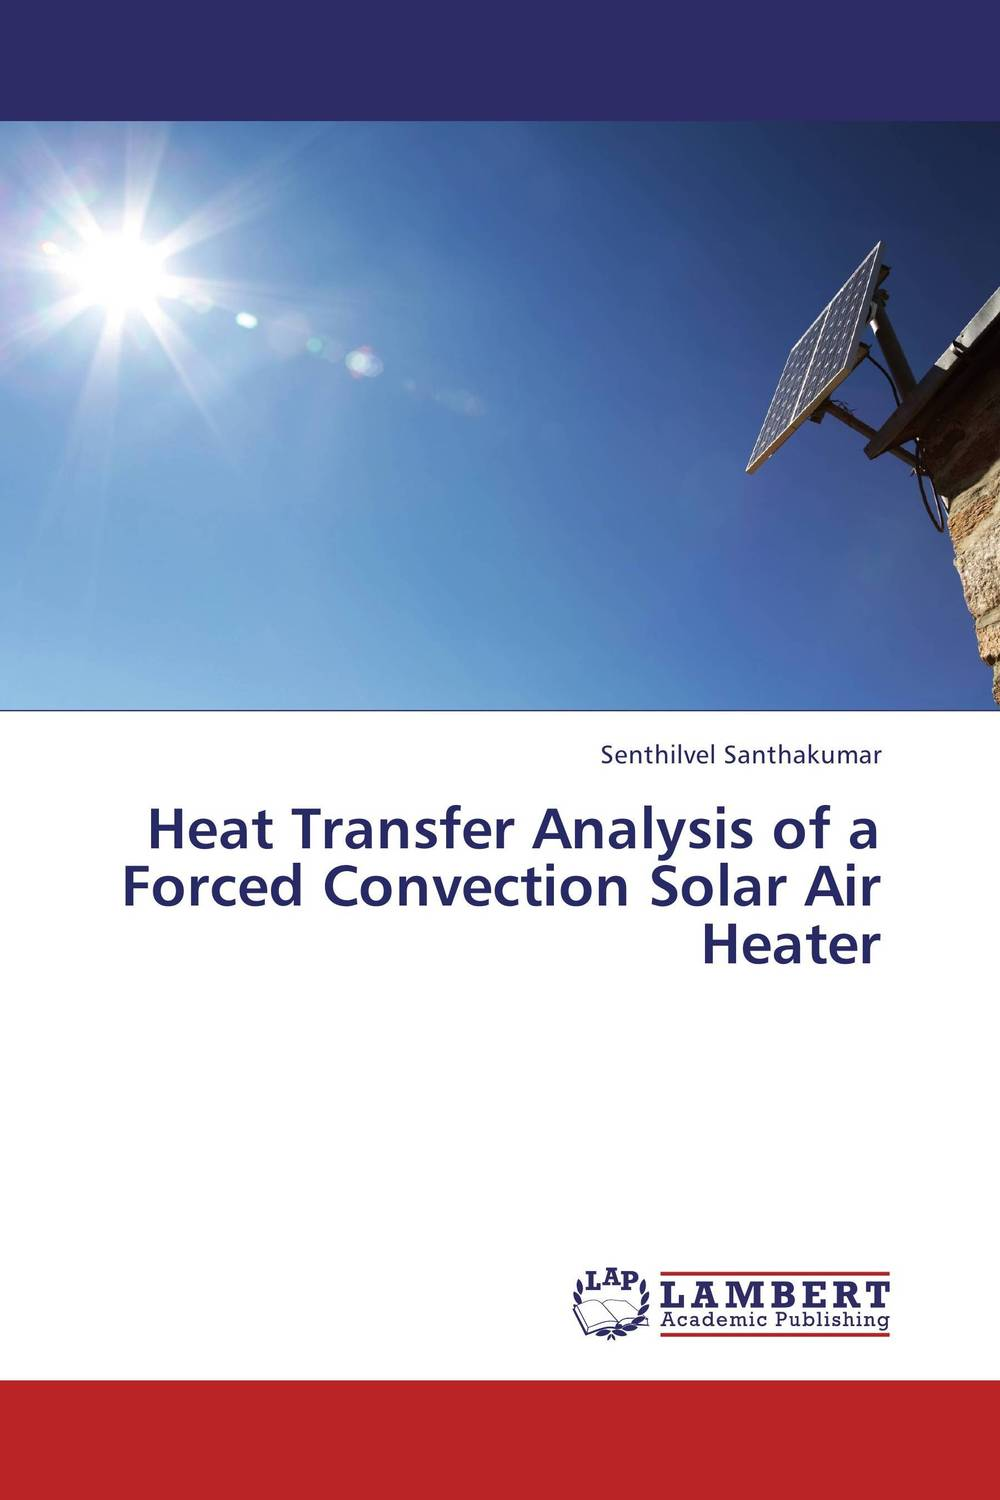 Heat Transfer Analysis of a Forced Convection Solar Air Heater корпус для hdd hdd case 2 5 sata hdd ssd usb 3 0 hdd d5386a eshow sbox 02503 hdd case